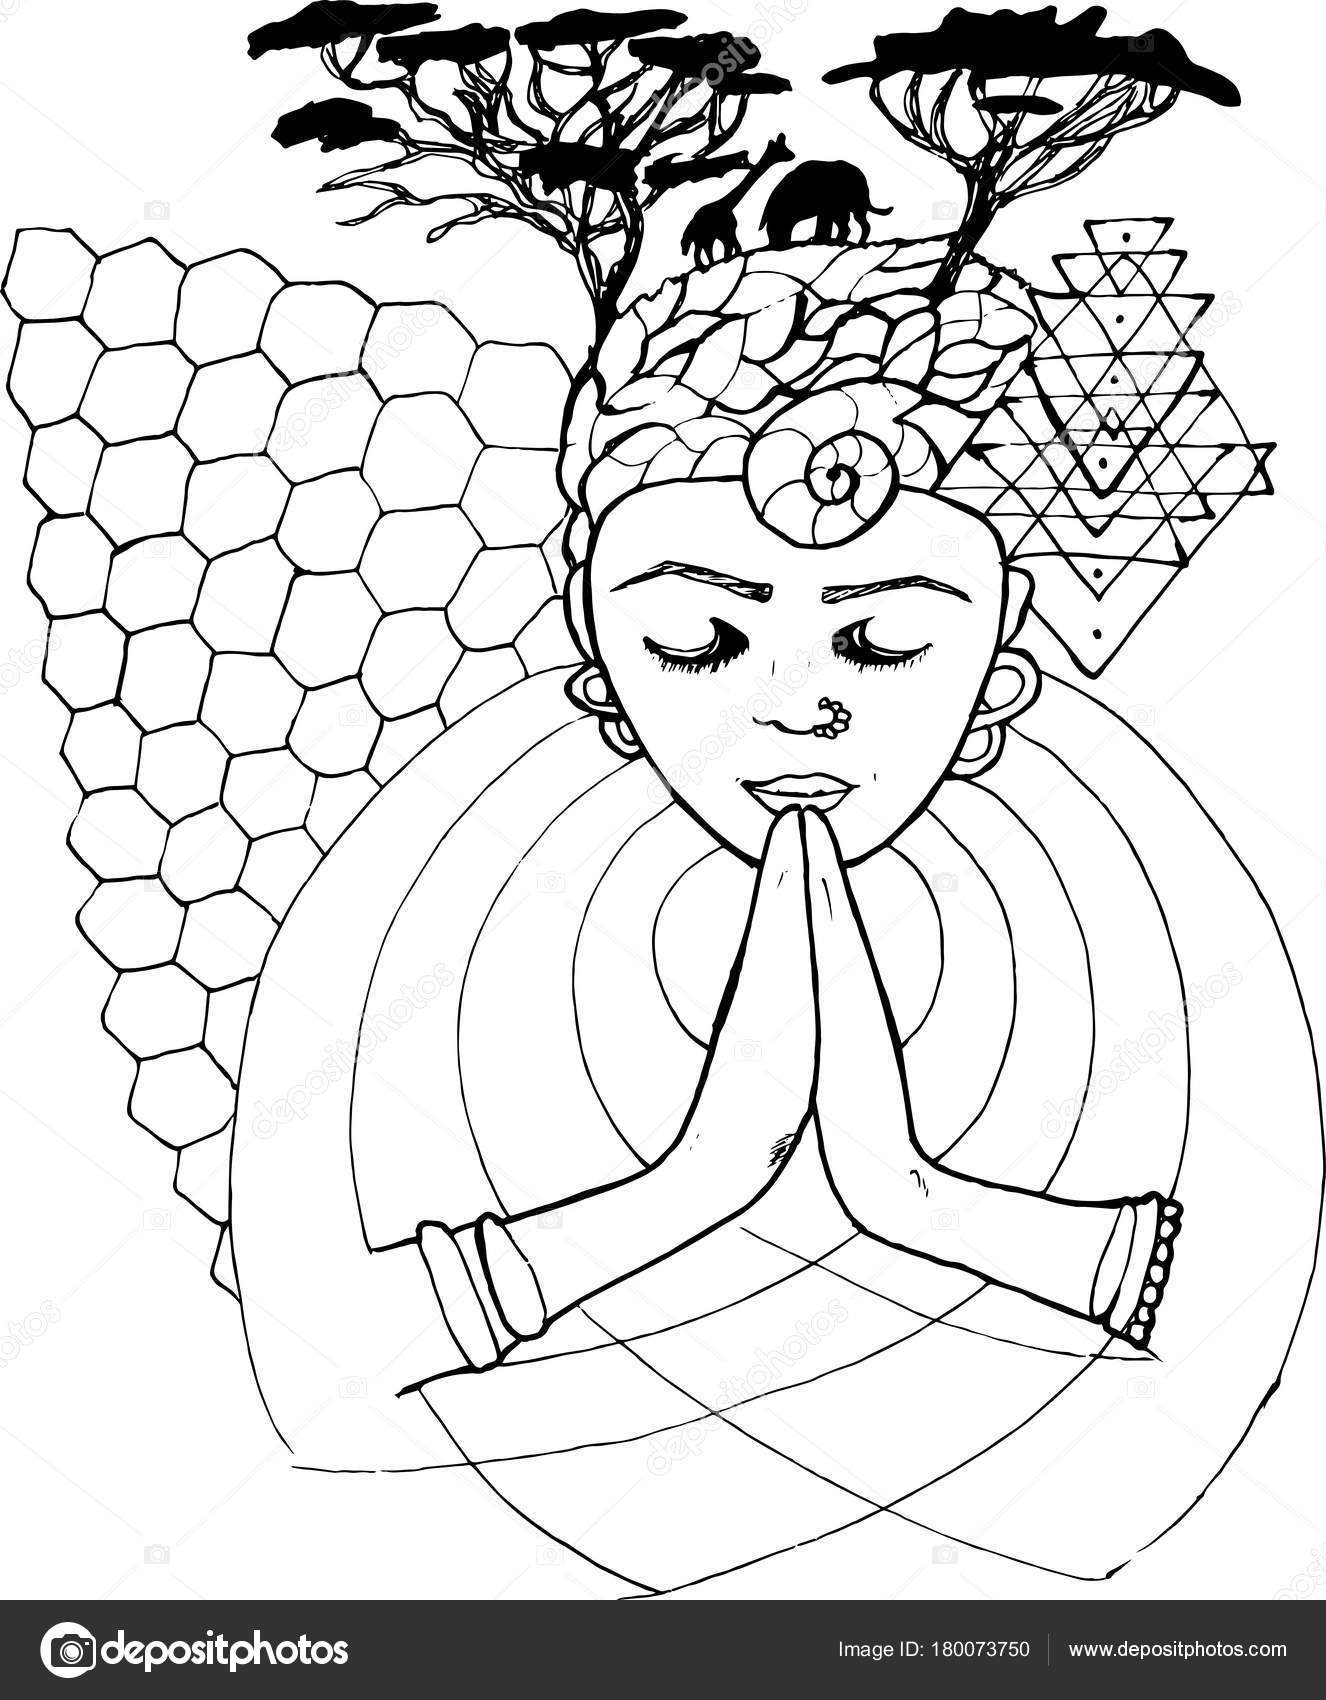 1326x1700 Black And White Drawing Of A Praying Person With Closed Eyes